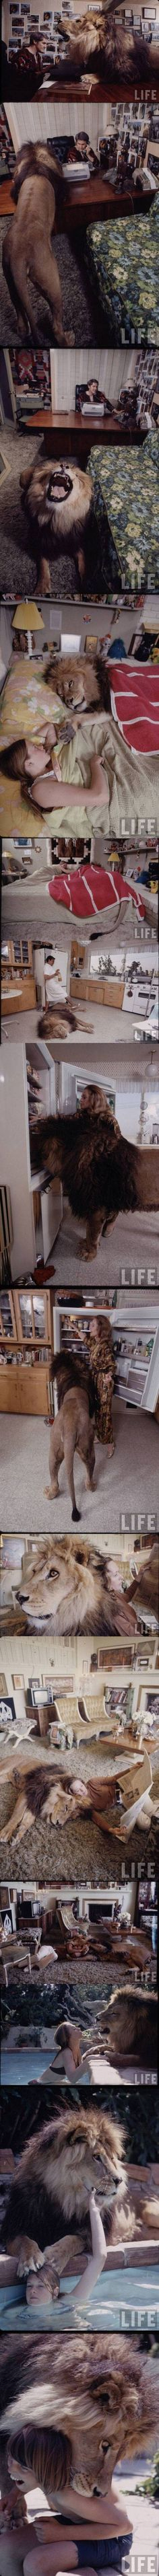 Tippi Hedren and family at home (including daughter Melanie Griffith and a pet lion)